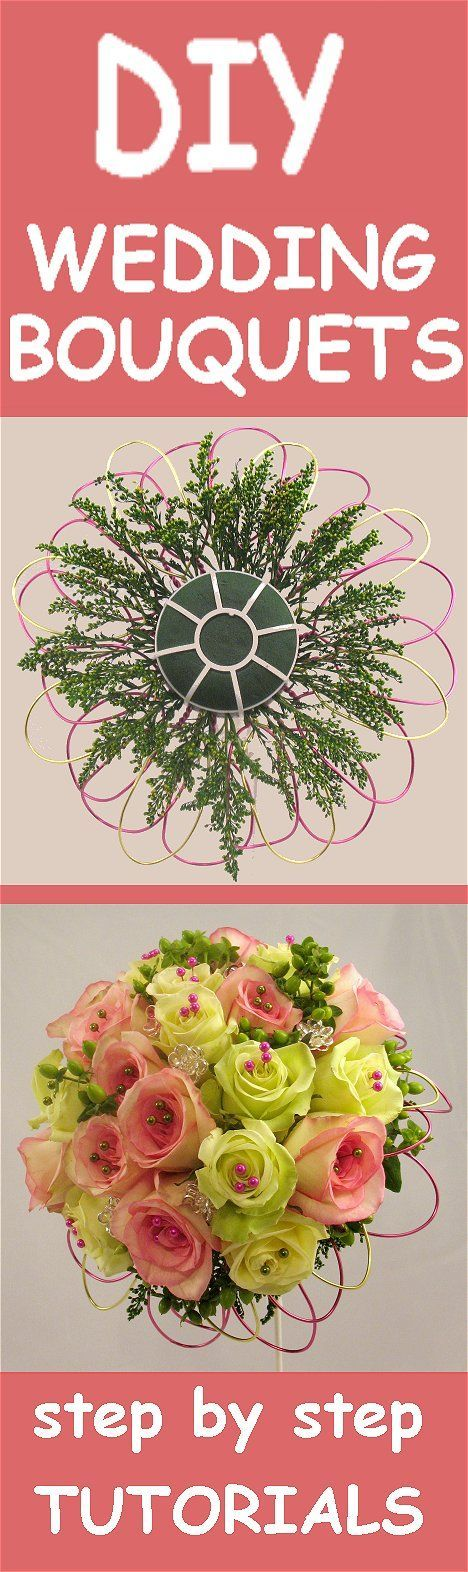 How To Make Wedding Bouquets And Corsages : Images about diy wedding flower tutorials on